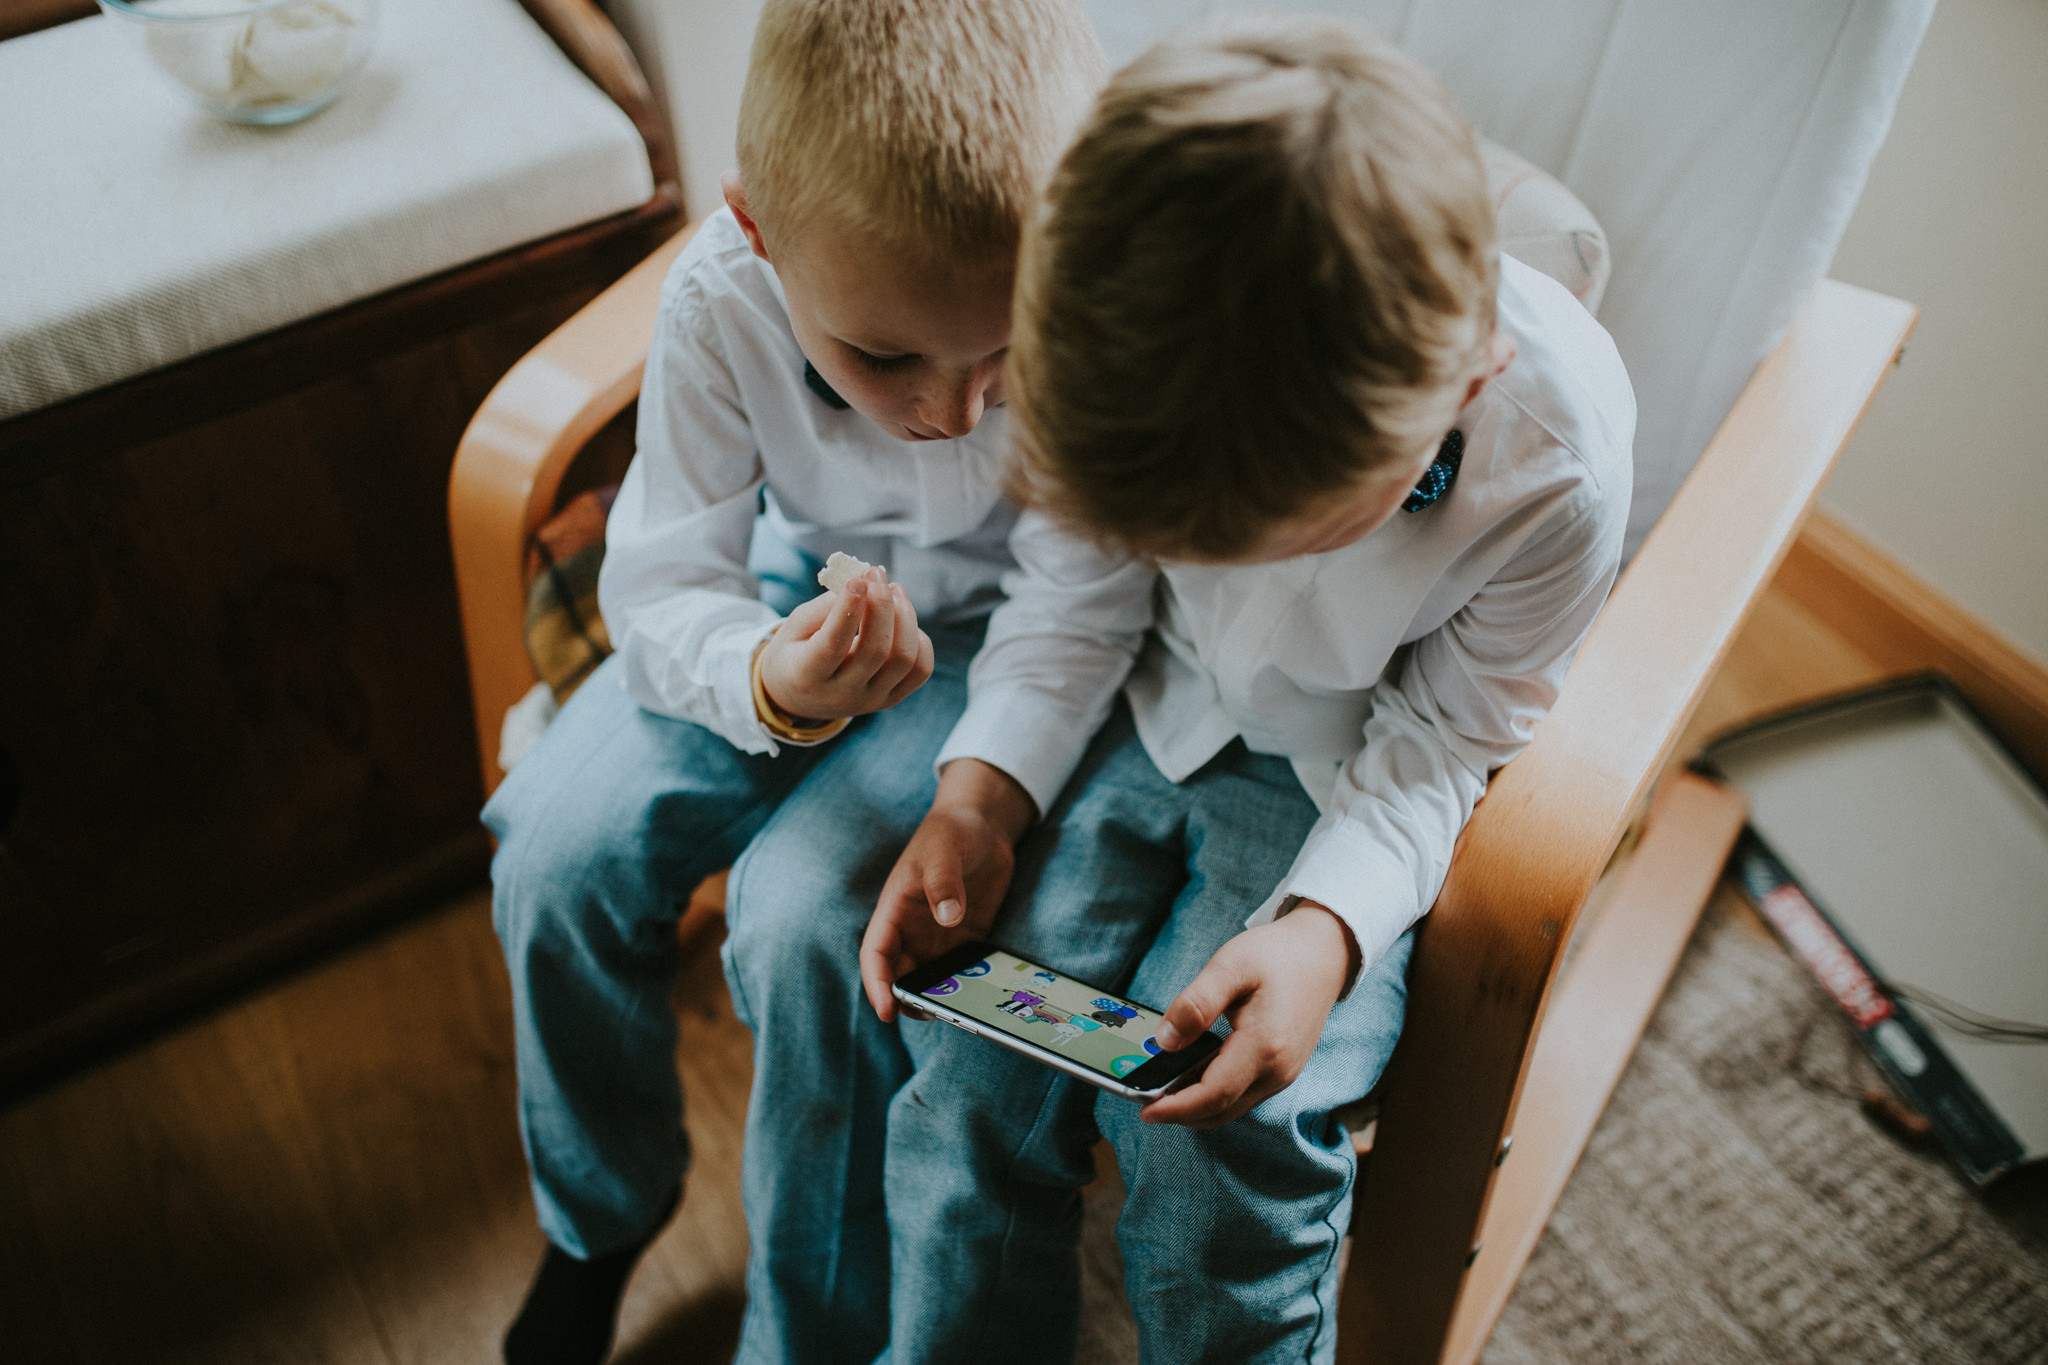 Two boys are sitting on a chair and looking at a mobile phone.